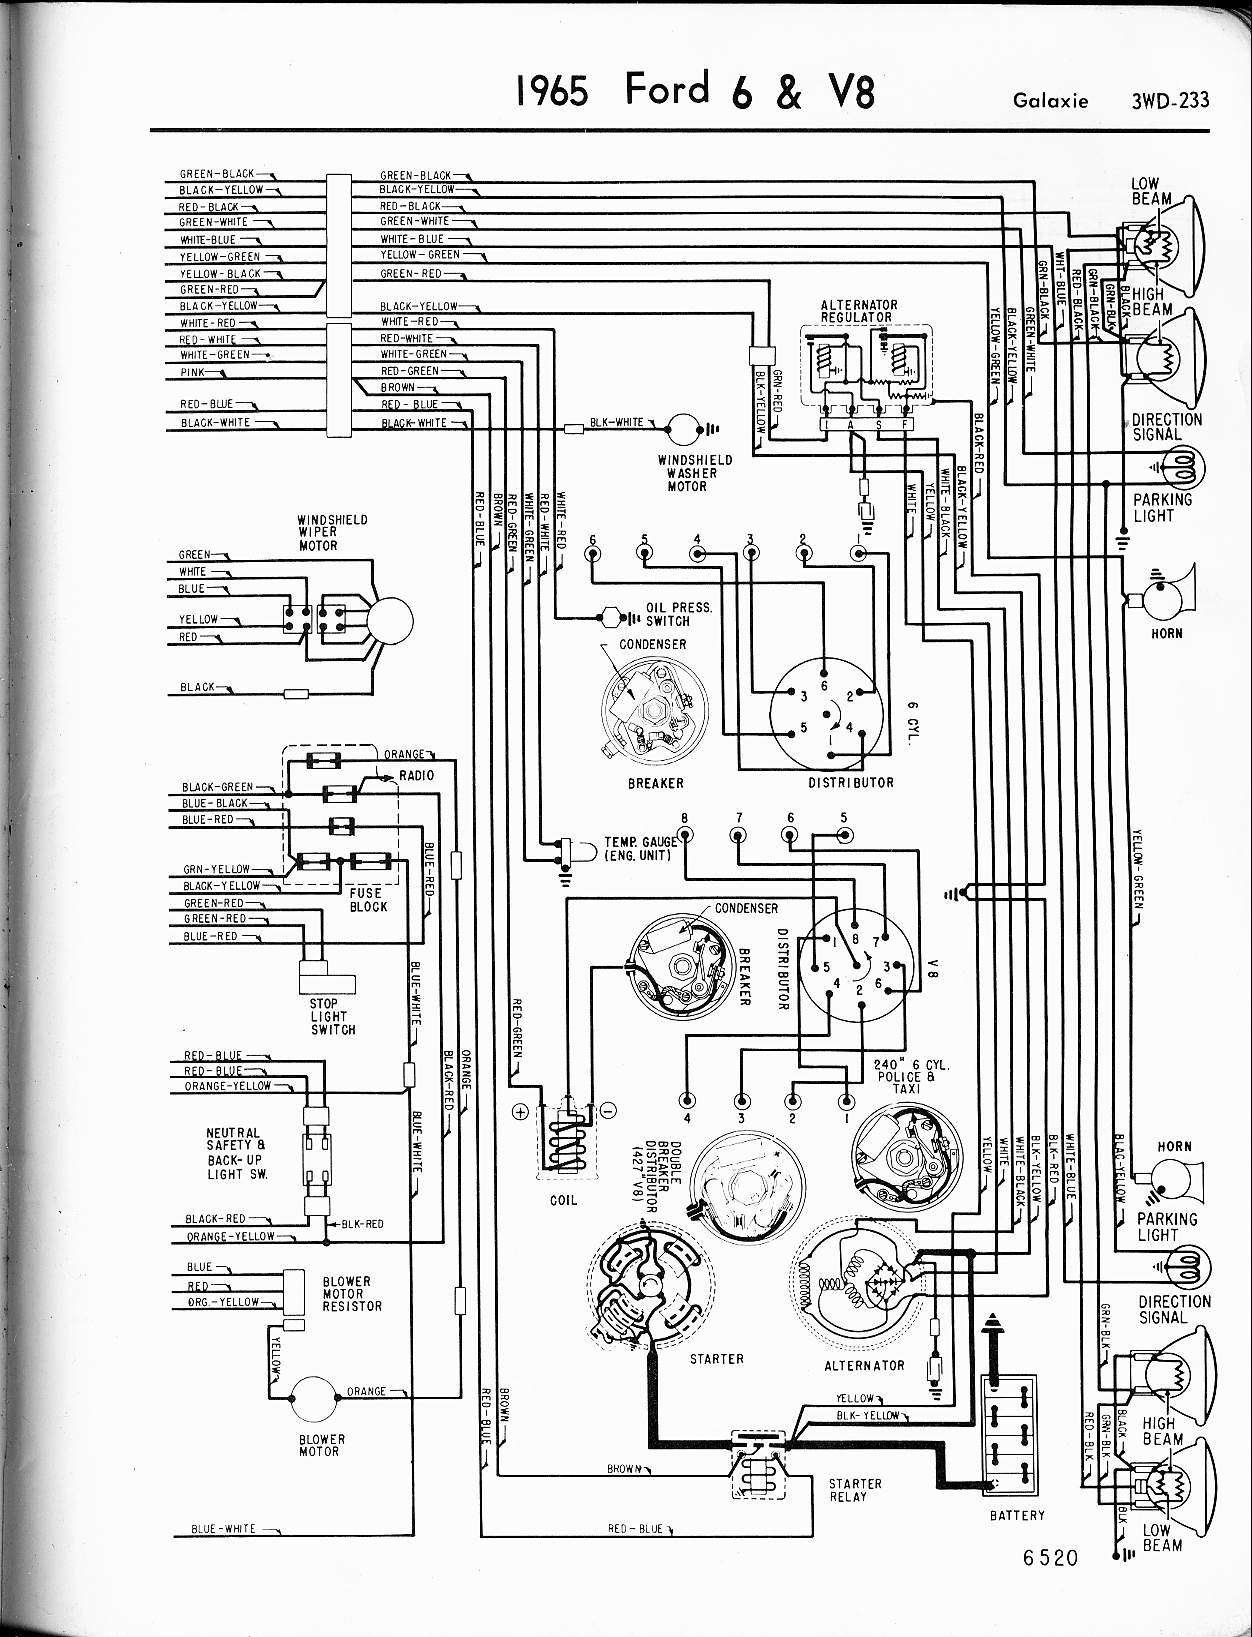 1966 Ford Pickup Wiring Diagram | Wiring Diagram  Ford Wiring Harness on 1930 model a wiring harness, 1949 dodge wiring harness, 1965 corvette wiring harness, 1955 chevy wiring harness, 1947 ford wiring harness, 1940 ford wiring harness, 1957 ford wiring harness, 1946 ford truck wiring diagram, 1948 cadillac wiring harness, 1956 ford wiring harness, 1941 buick wiring harness, 1955 ford wiring harness, 1970 chevelle wiring harness, 1941 ford wiring harness, 1969 nova wiring harness, 1949 lincoln wiring harness, chevy truck wiring harness, 1950 ford wiring harness, 1951 ford wiring harness, 1954 ford wiring harness,